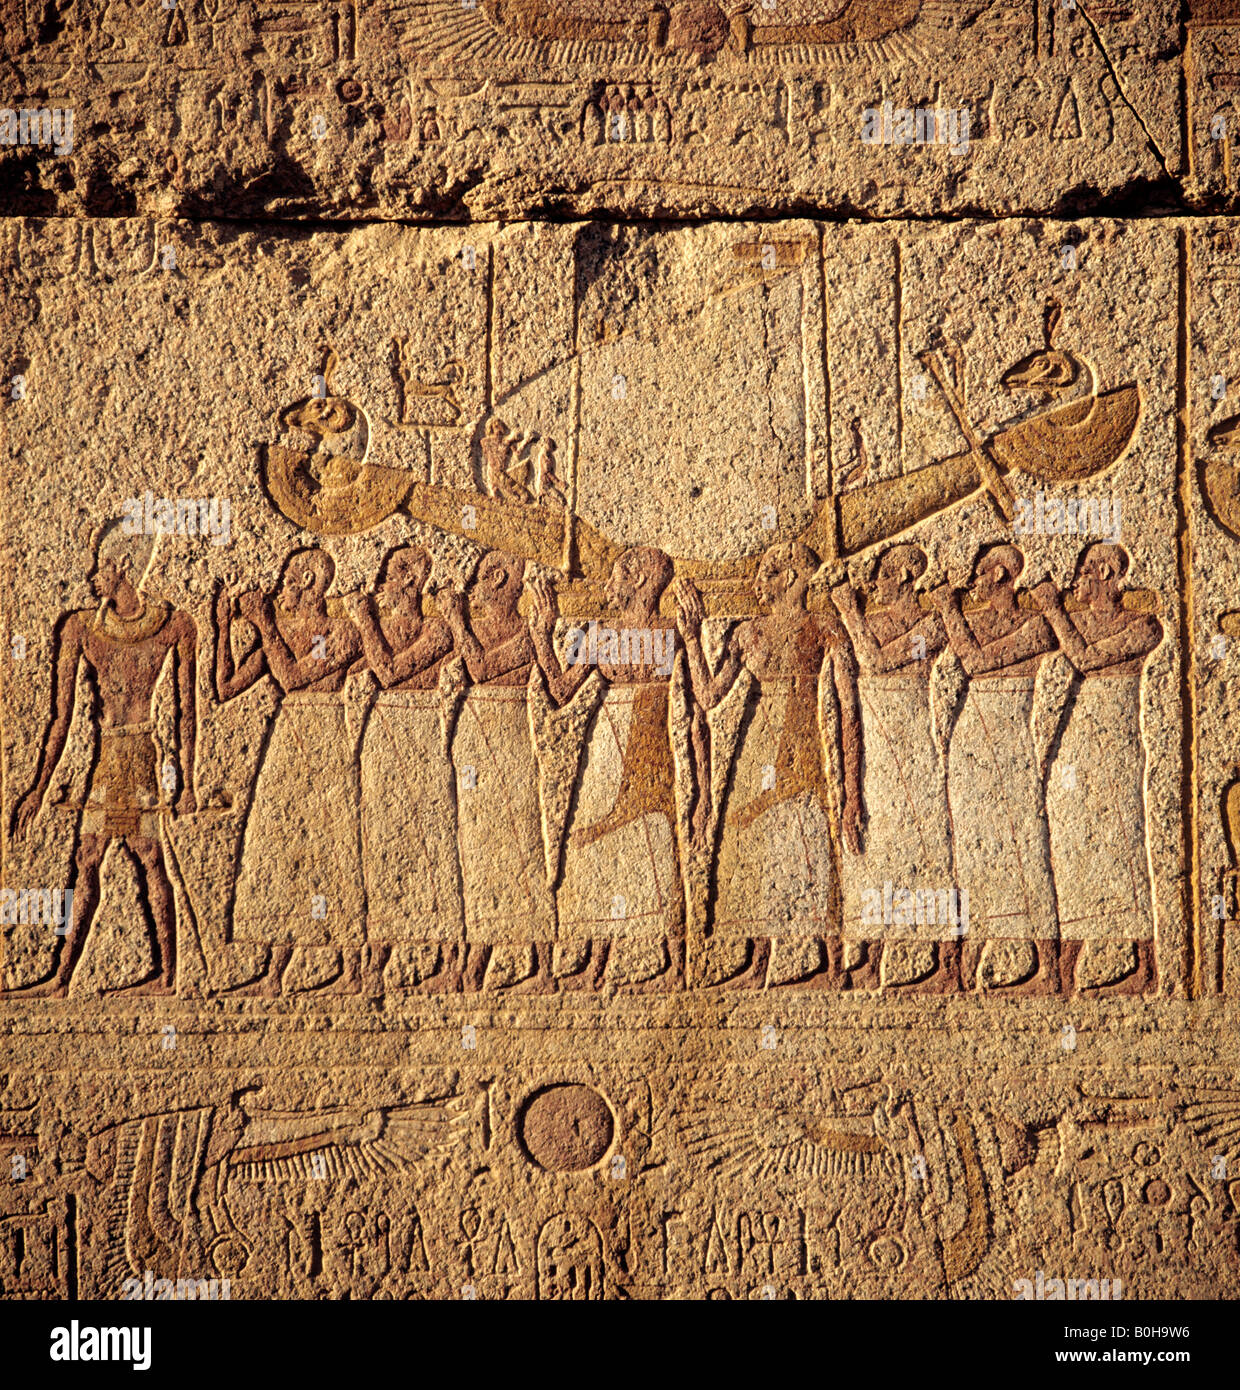 Hieroglyphs, relief depicting Egyptian gods, Luxor, Thebes, Egypt - Stock Image